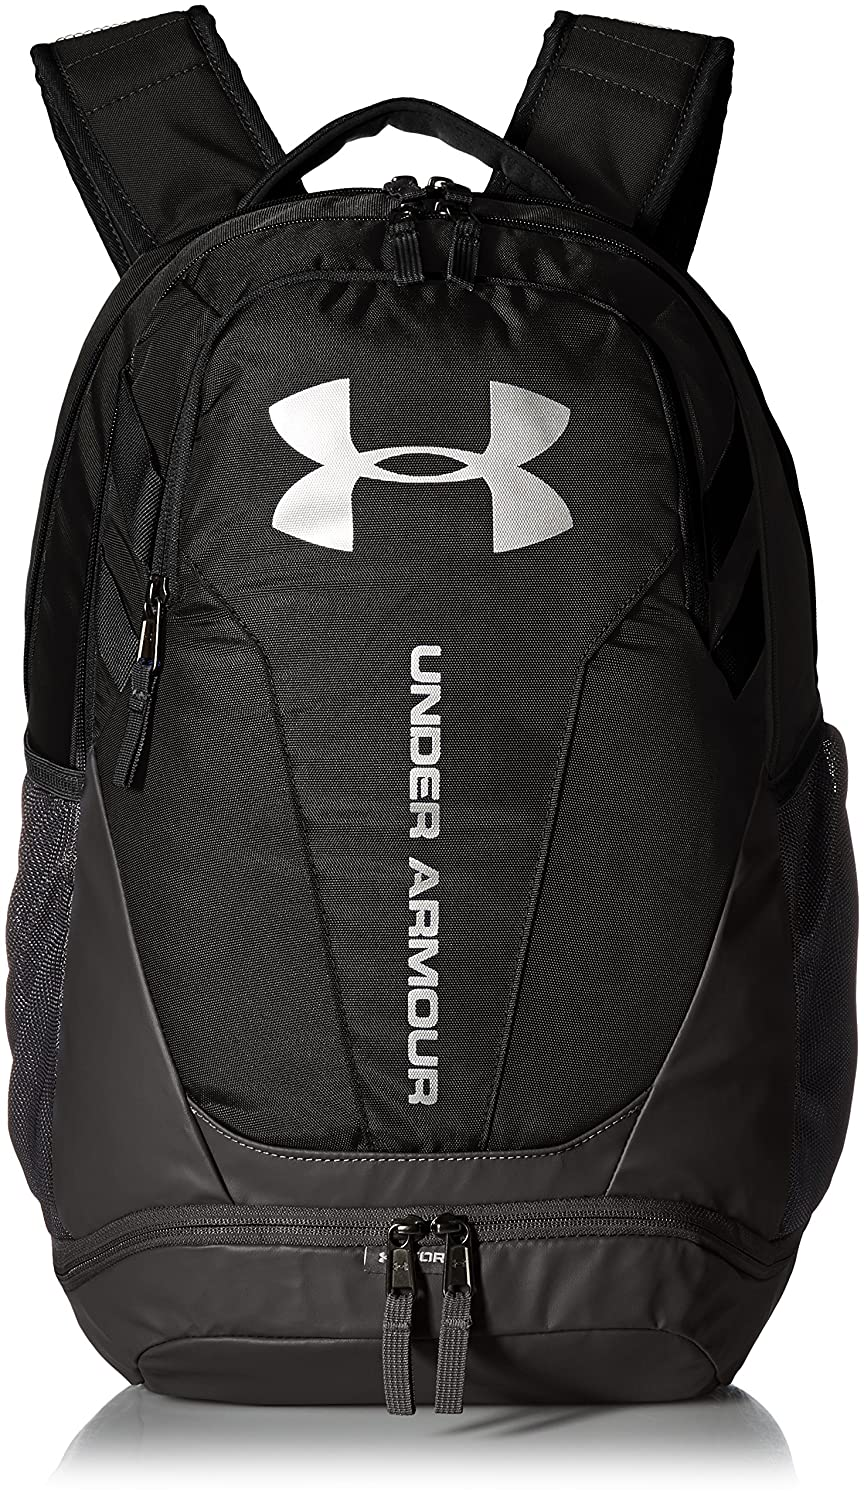 59a96bc13 Under Armour Hustle II Backpack, Black, One Size: UNDER ARMOUR: Amazon.ca:  Sports & Outdoors